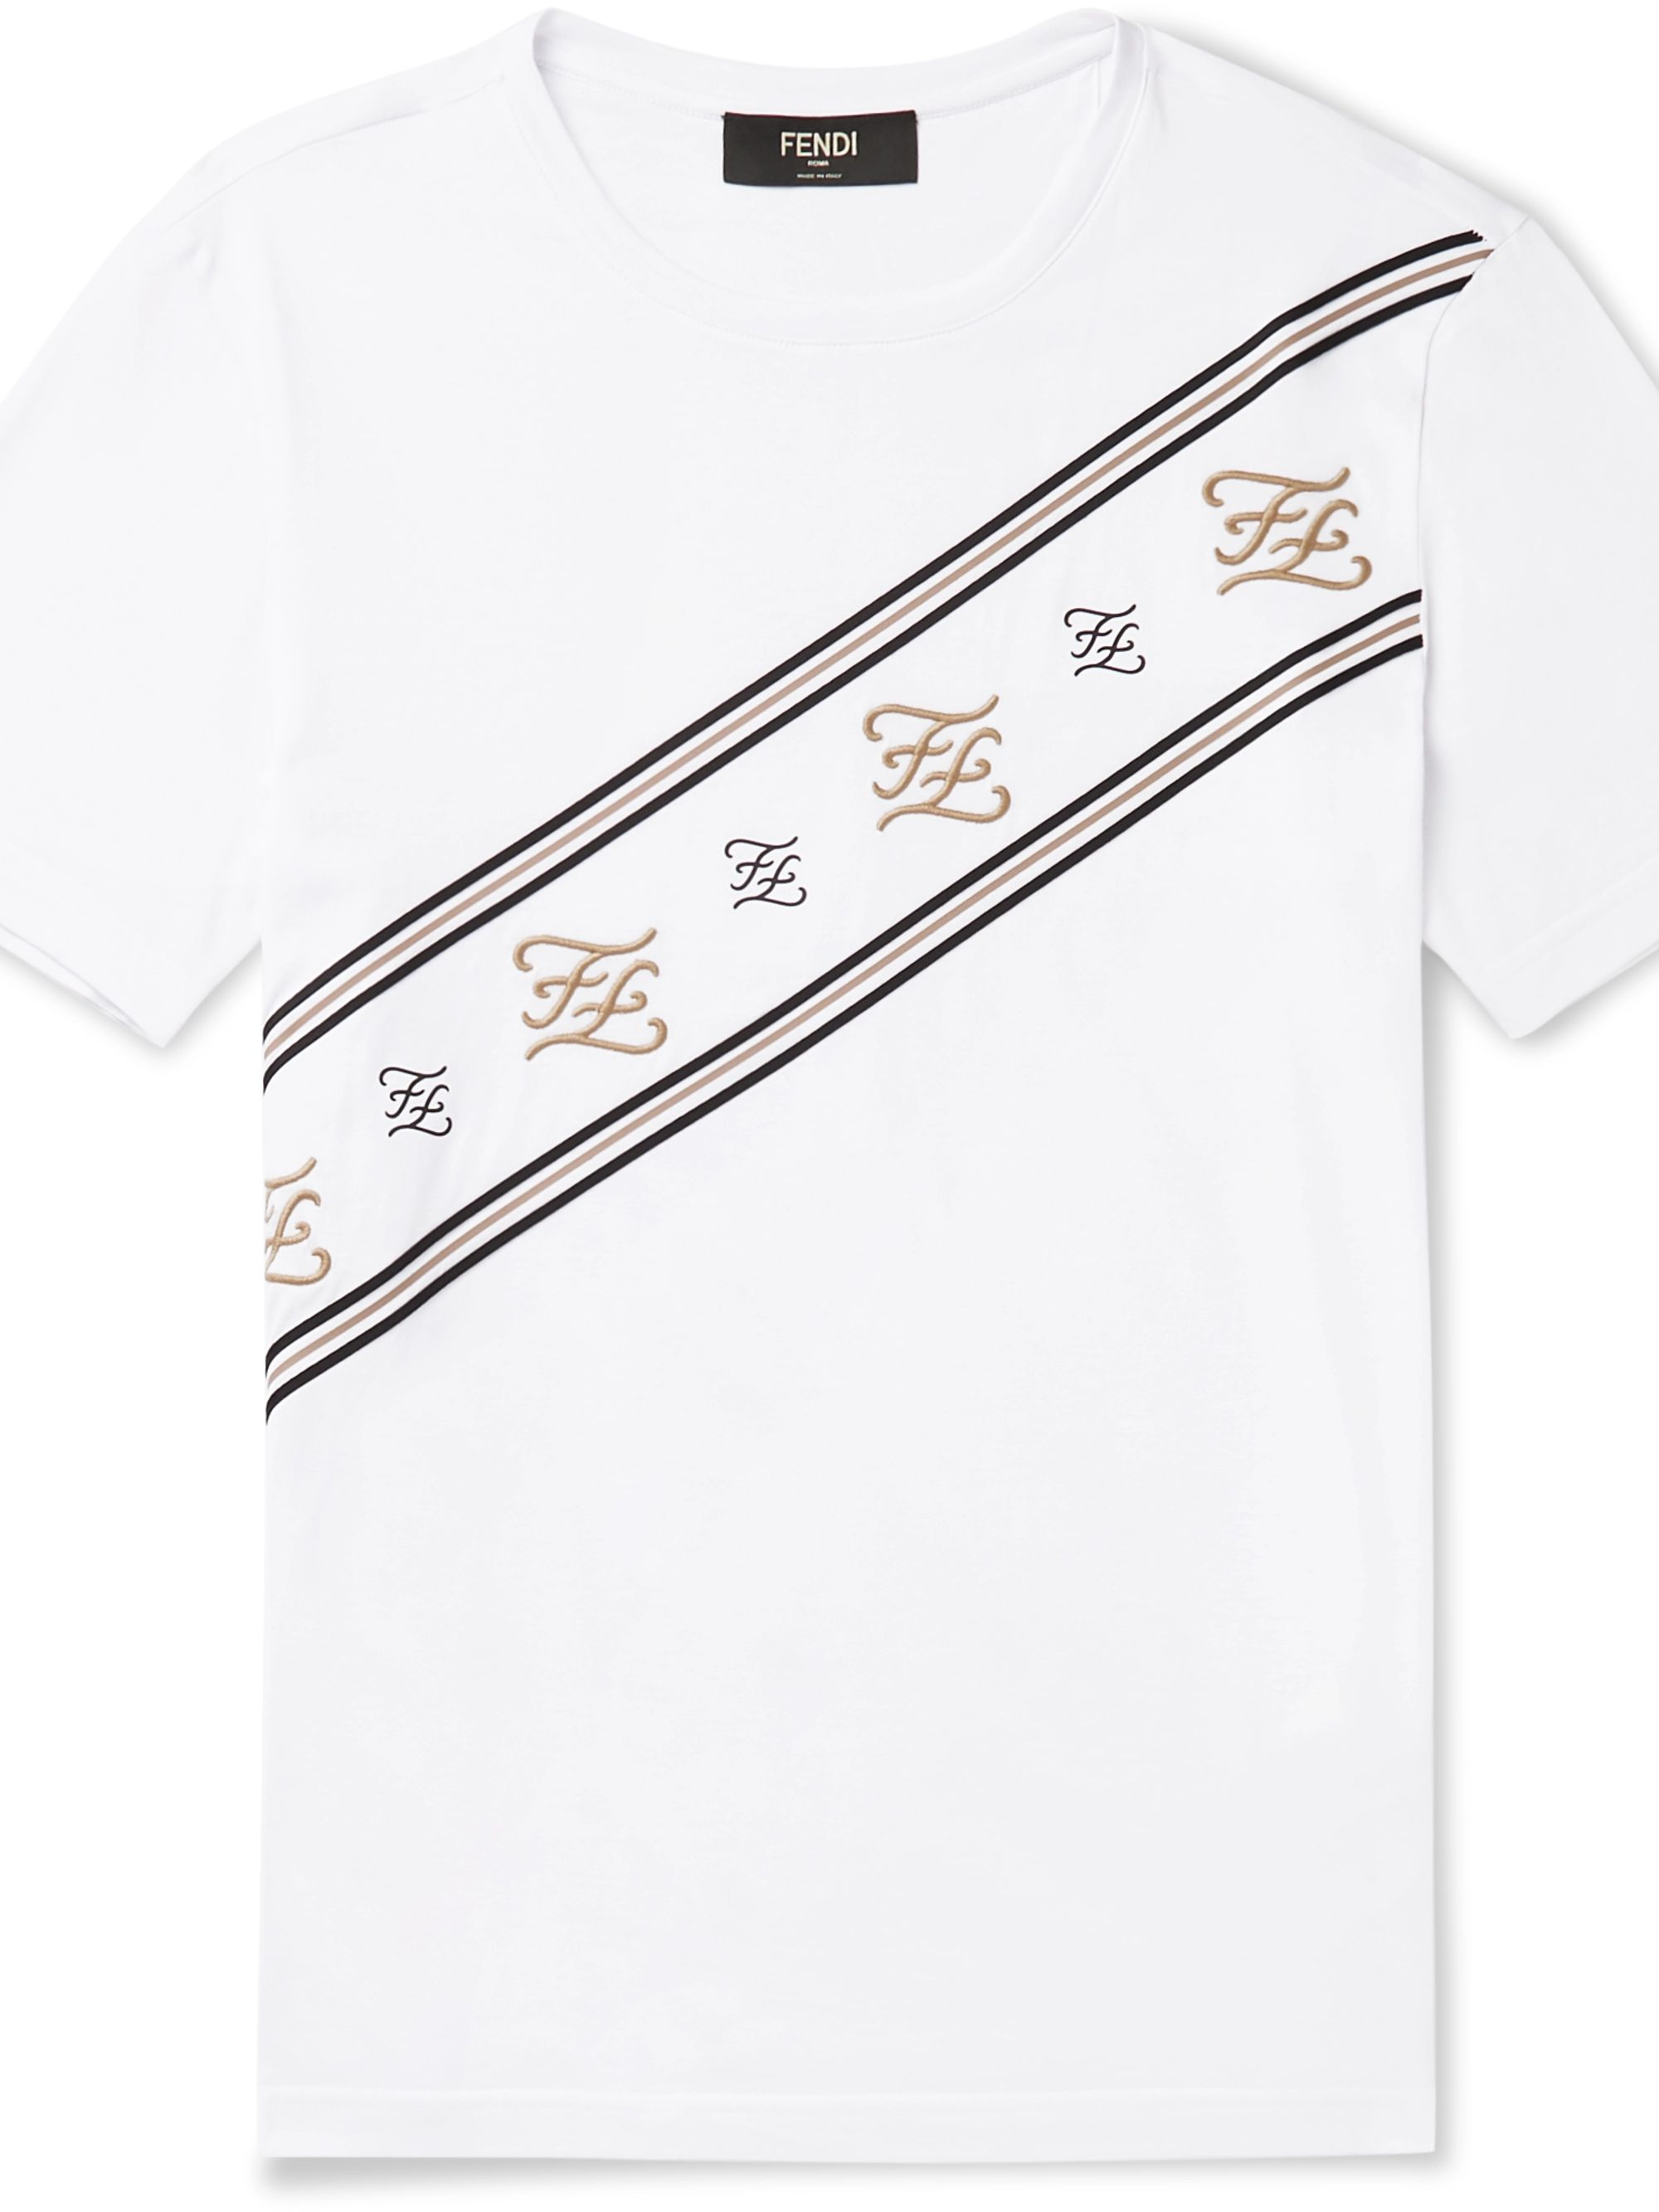 Fendi Slim-Fit Logo-Embroidered Cotton-Jersey T-Shirt